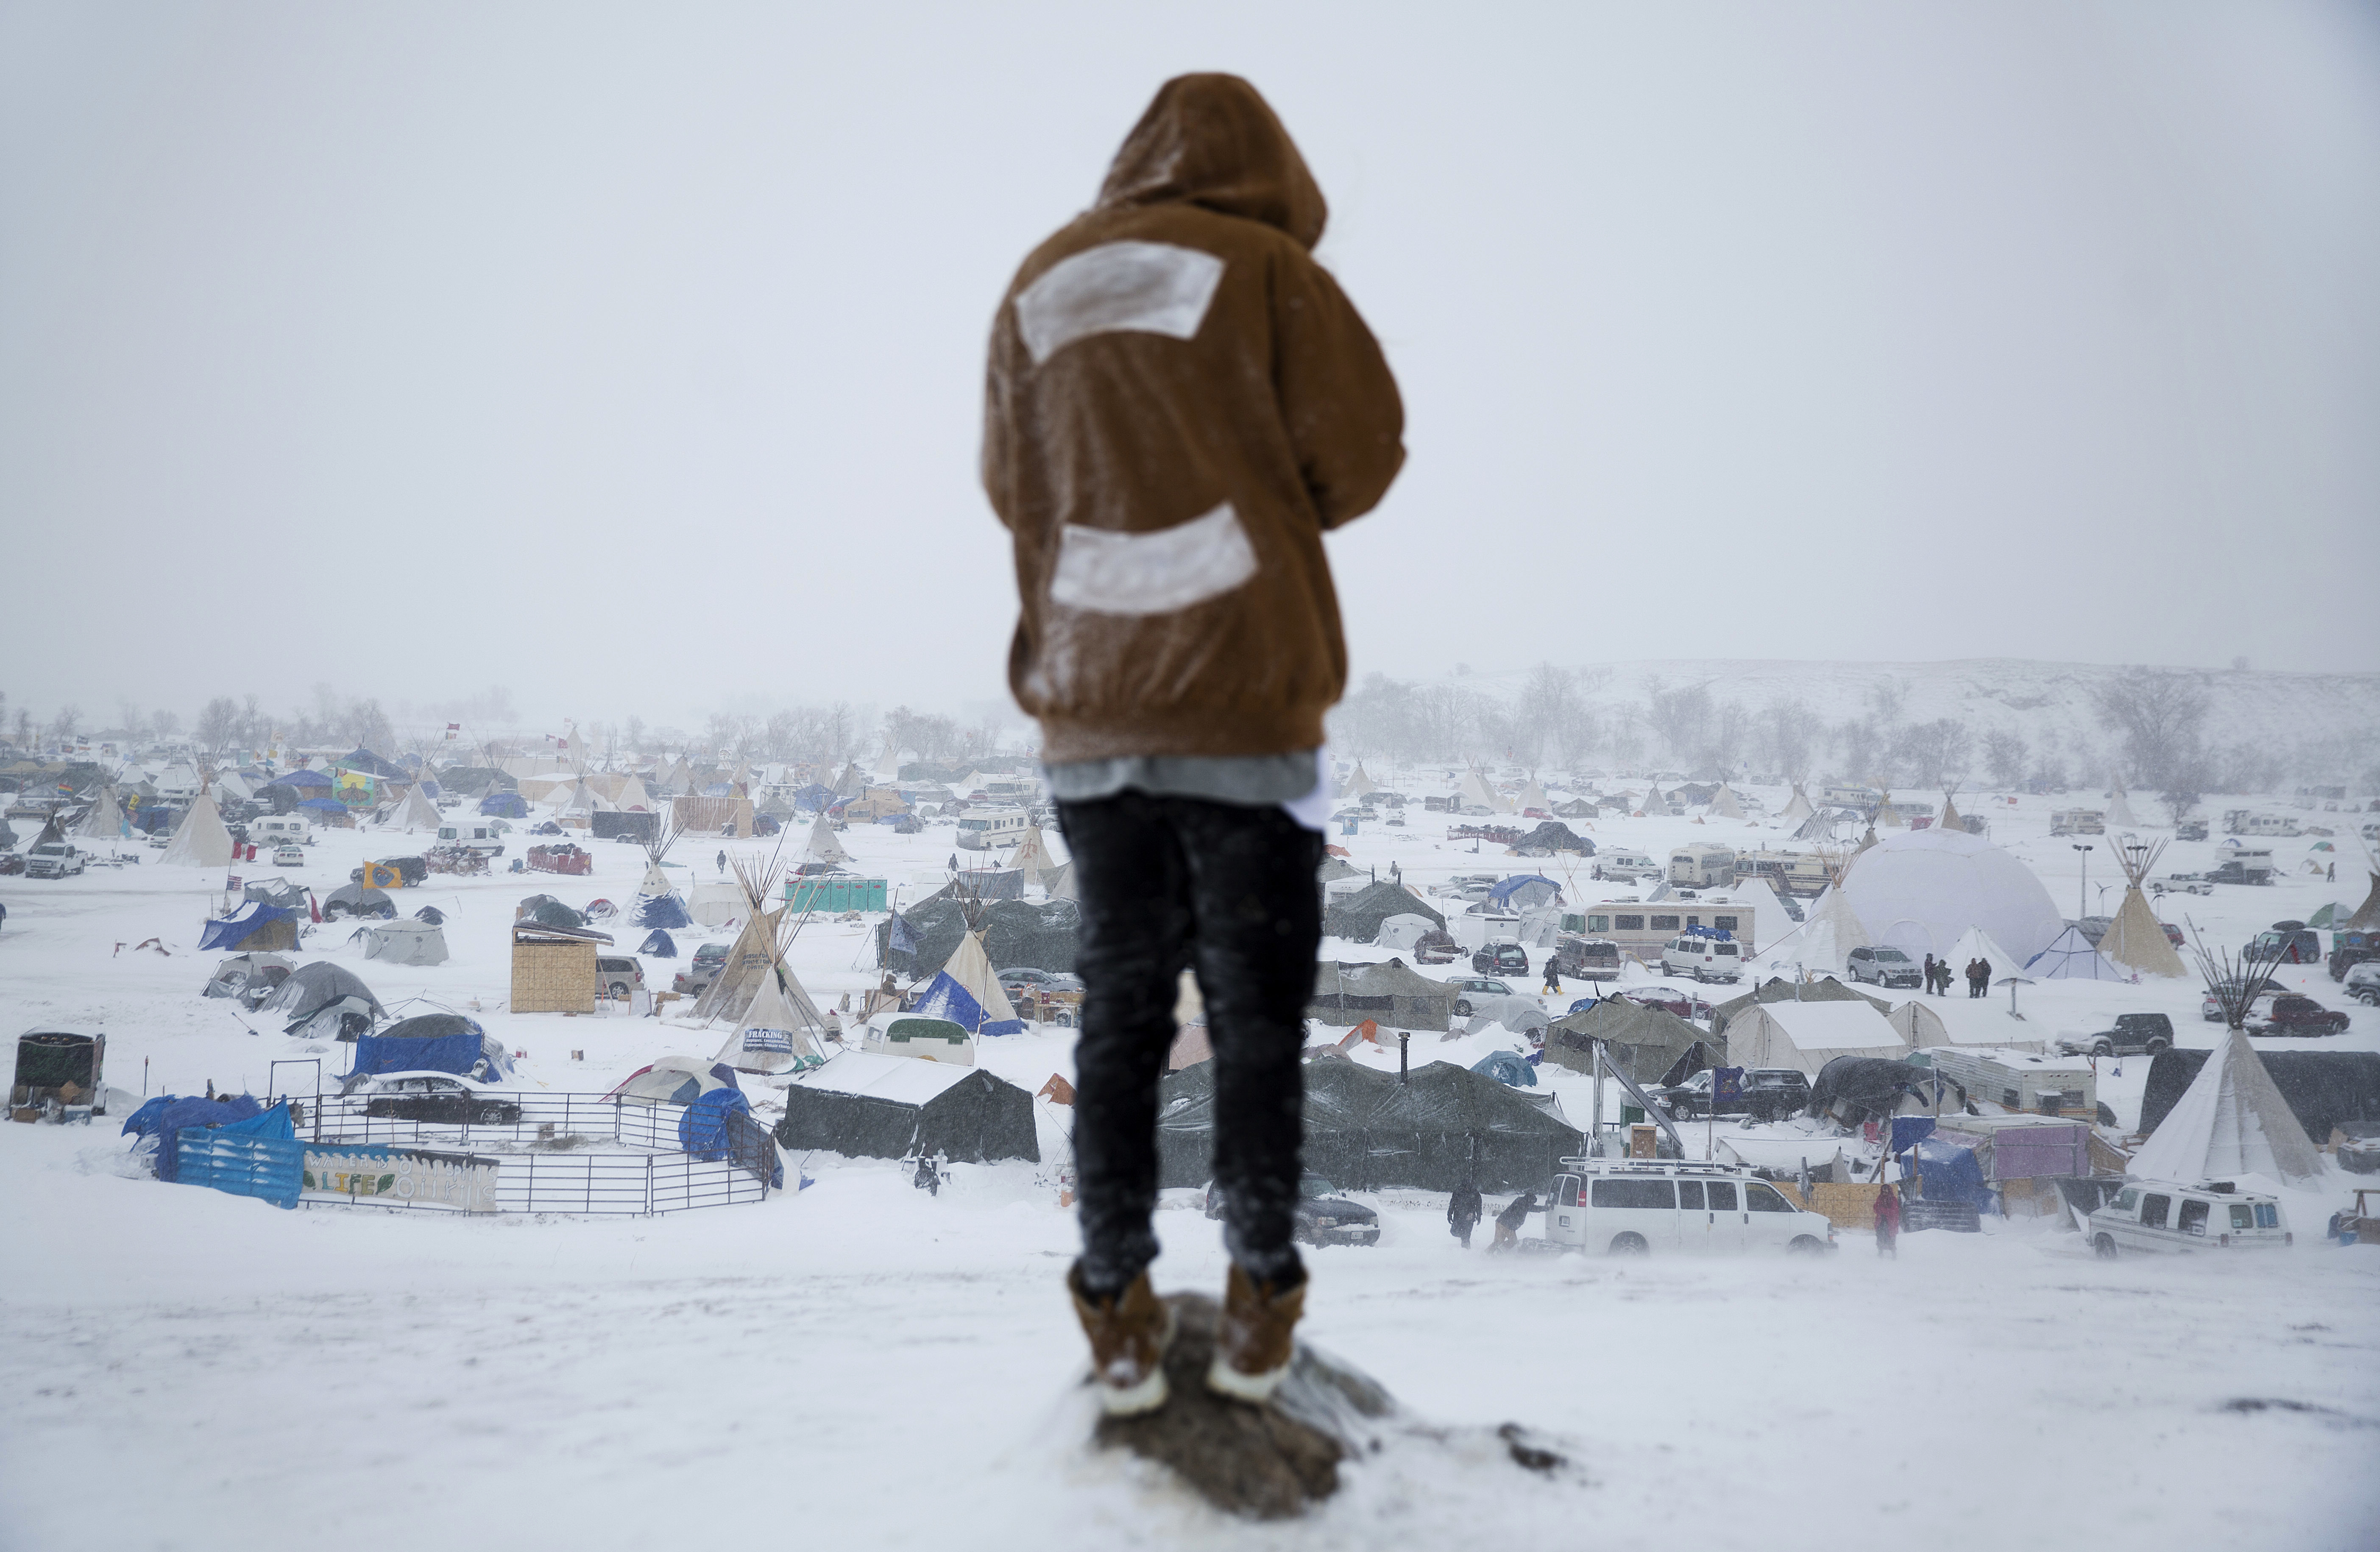 Damin Radford of New Zealand overlooks the Oceti Sakowin camp on Tuesday, where people have gathered to protest the Dakota Access pipeline near Cannon Ball, N.D.